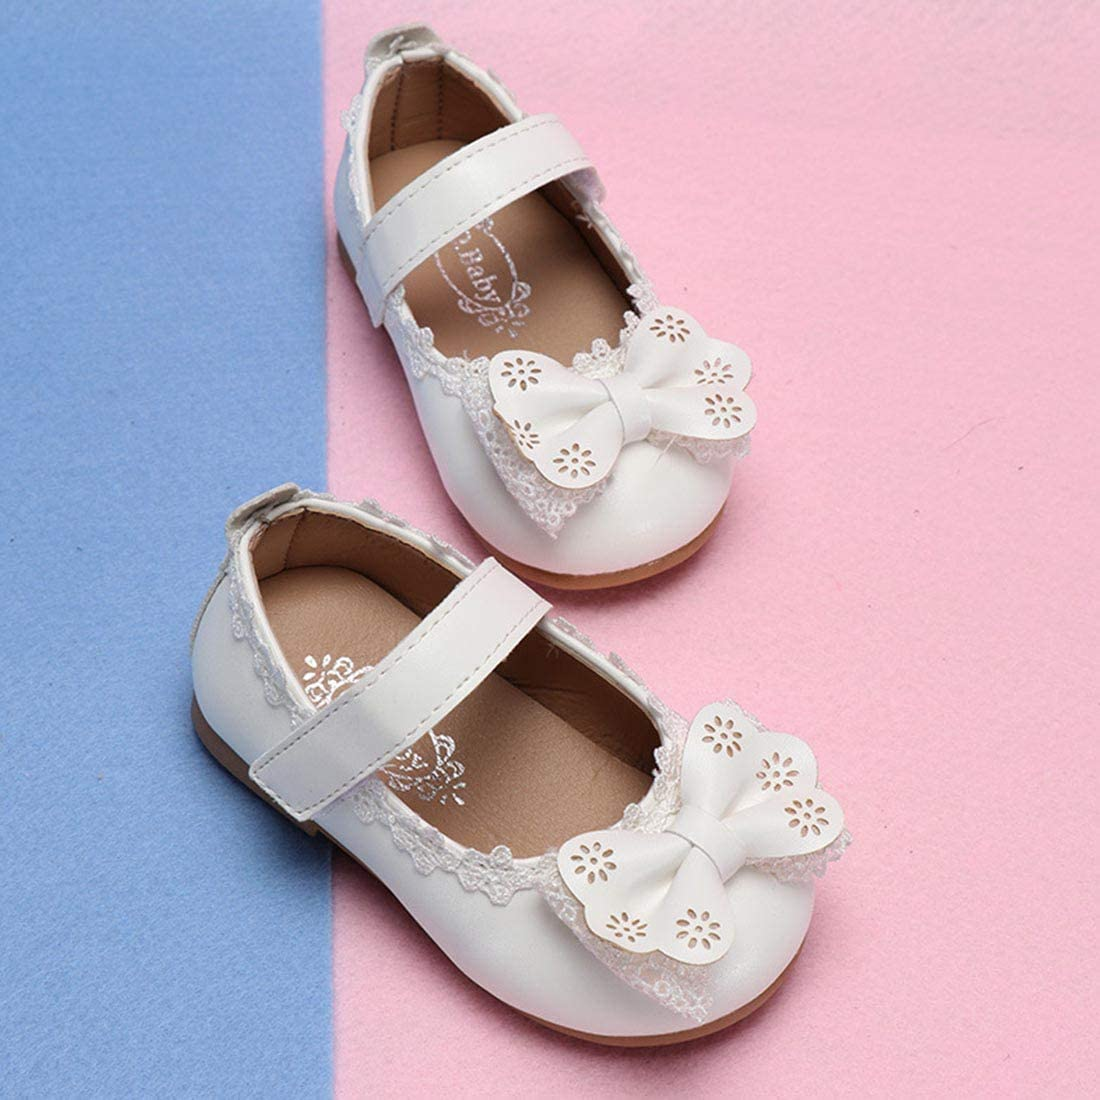 YIBLBOX Baby Girls Bowknot Mary Janes Toddler First Walking Shoes for Party Special Occasion